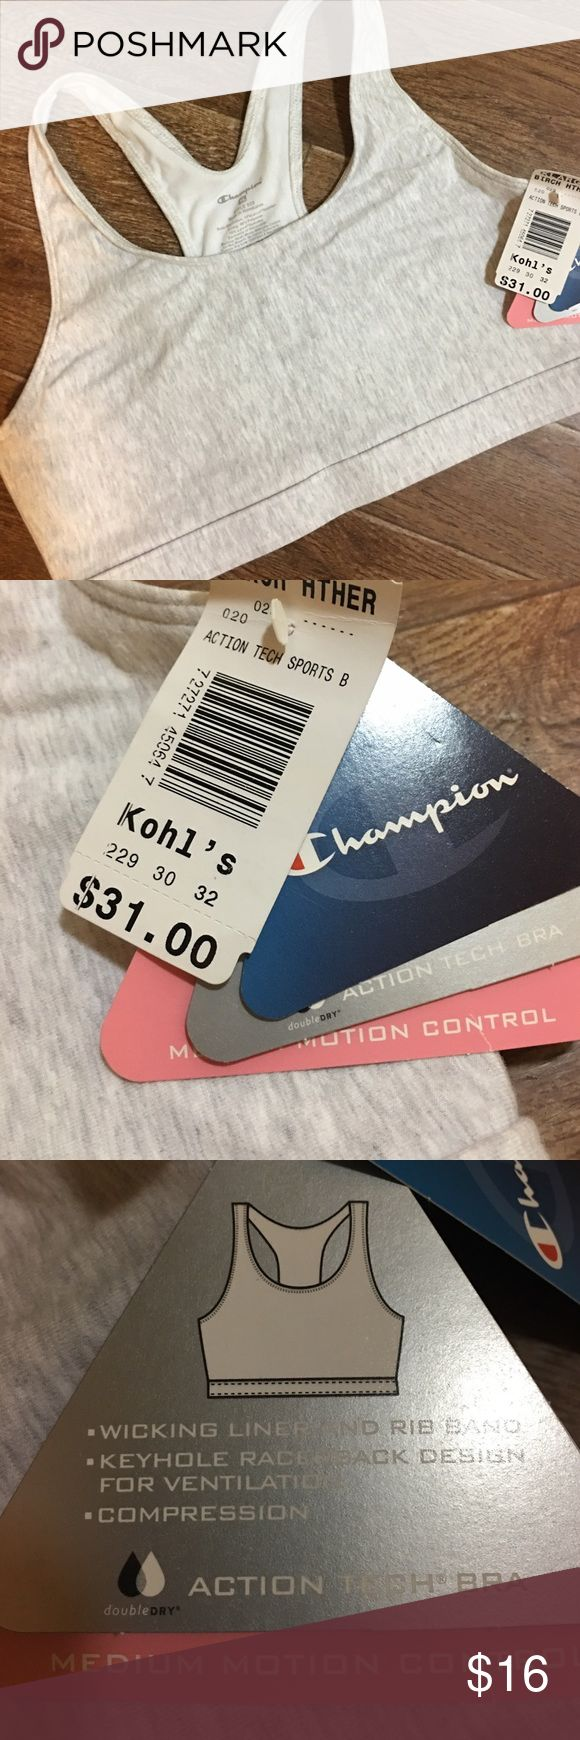 Champion - Heather Grey Sports Bra XL Champion brand heather gray sports bra, women size XL. NWT, with the tag price of $31. Please be sure to check out all of my other boutique items to bundle and save. Reasonable offers are considered! Same or next business day shipping guaranteed! Champion Intimates & Sleepwear Bras